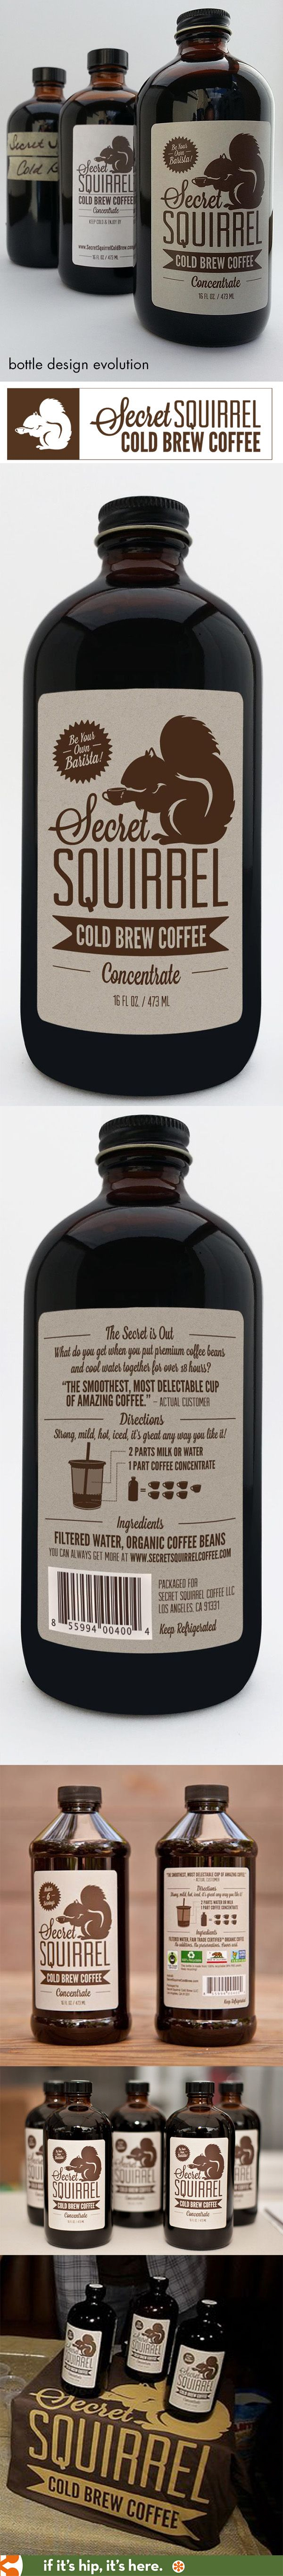 Here you go SmallBlackRoom Secret Squirrel Cold Brew Coffee Concentrate's Bottle Design Evolution PD